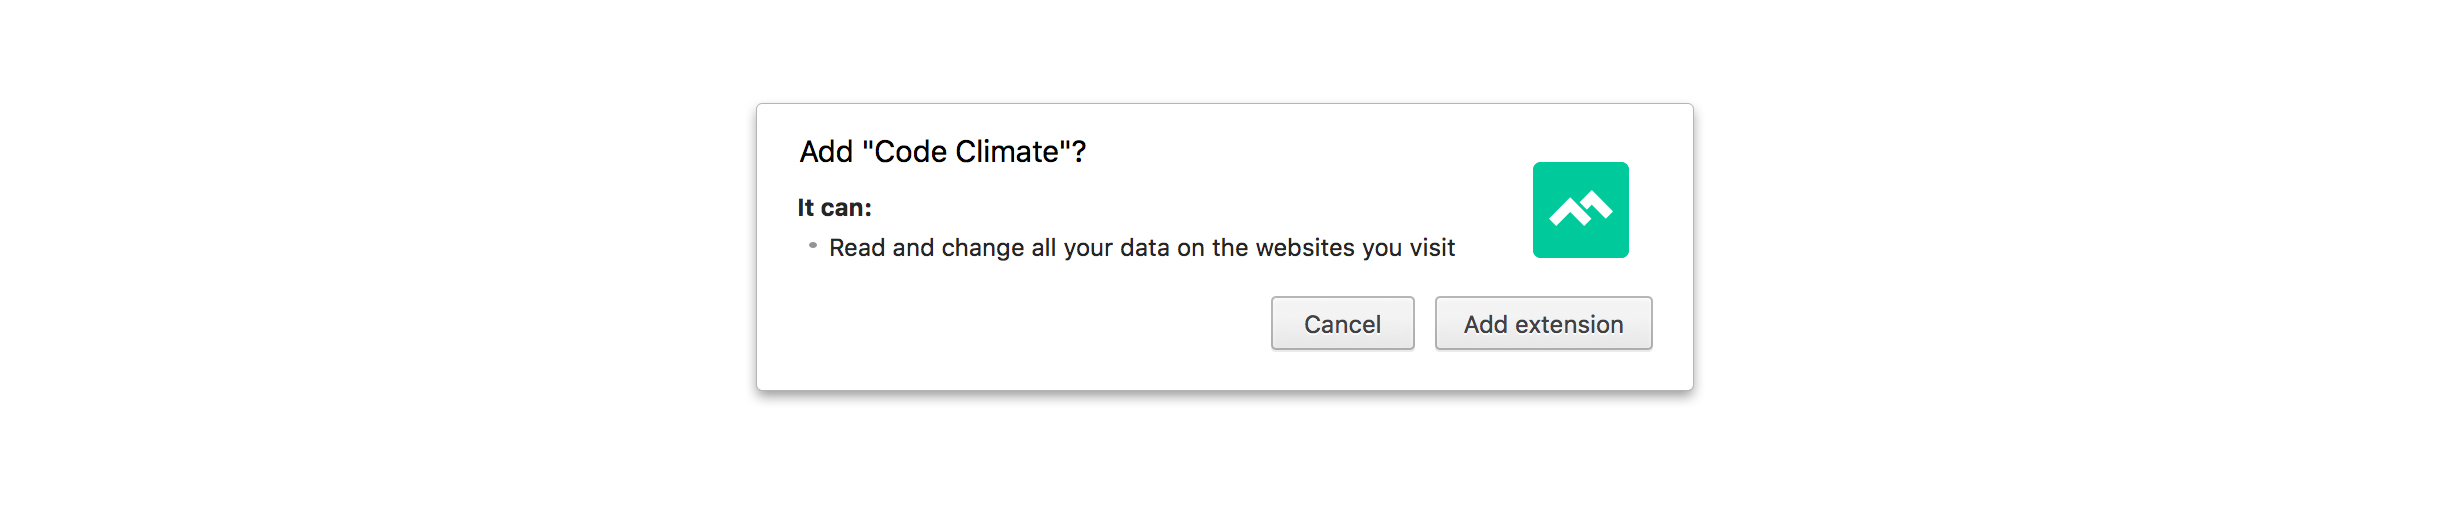 Add Code Climate